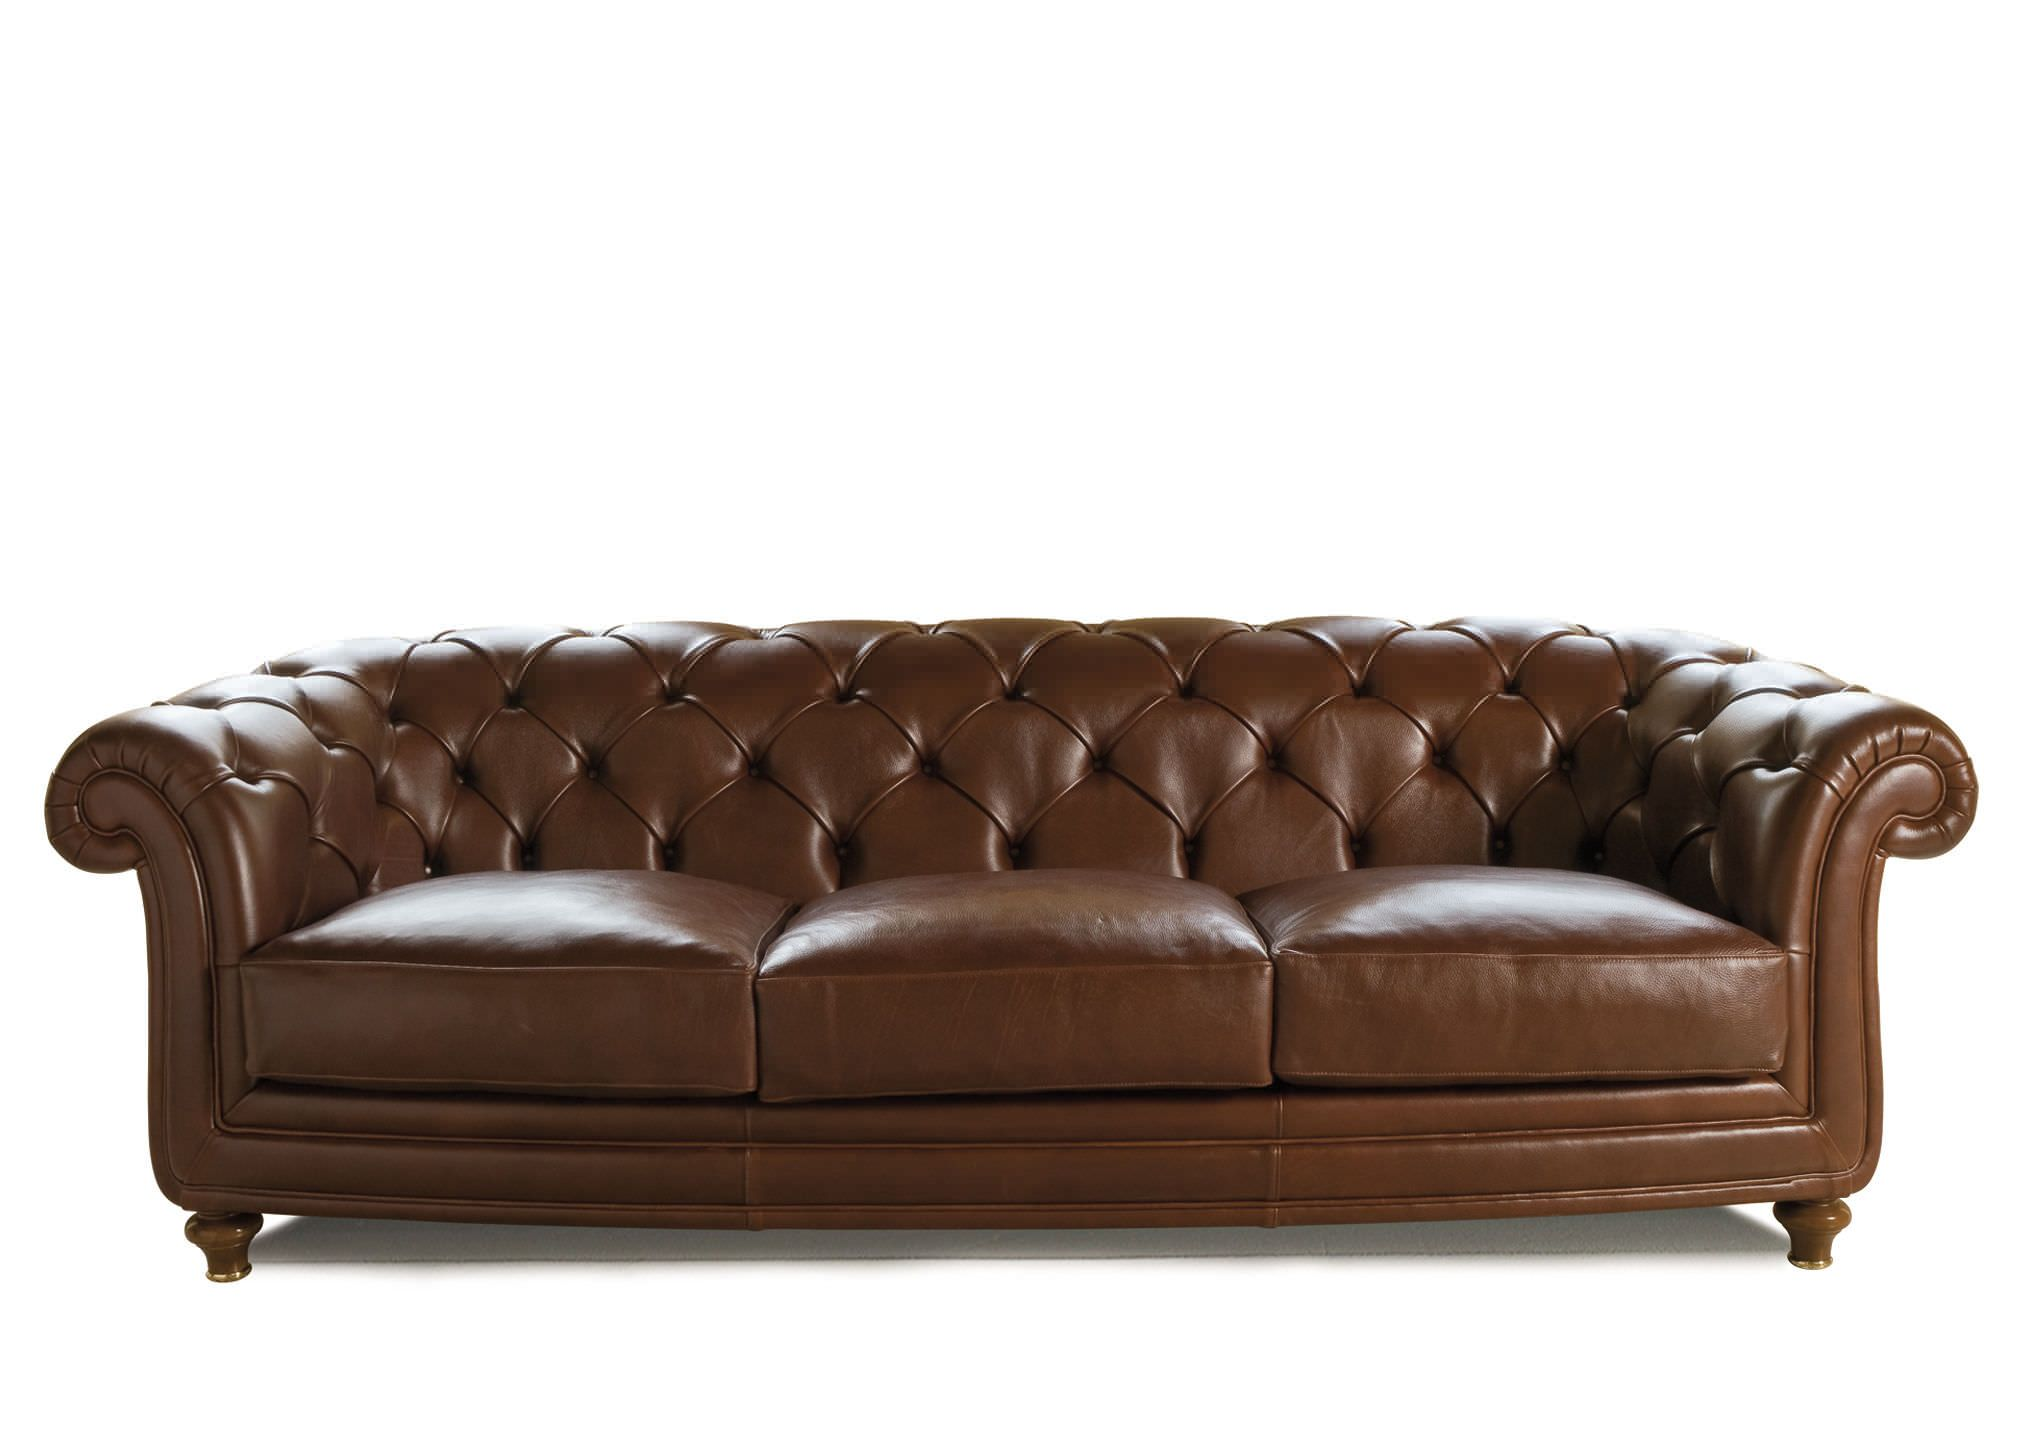 Full Size of Graue Chesterfield Couch Sofa Grau 2 Sitzer Set 2er Samt Otto Leder Stoff Suites Tan Bett L Form Rahaus Hussen 3 Teilig Rotes Mit Relaxfunktion Elektrisch Sofa Chesterfield Sofa Grau